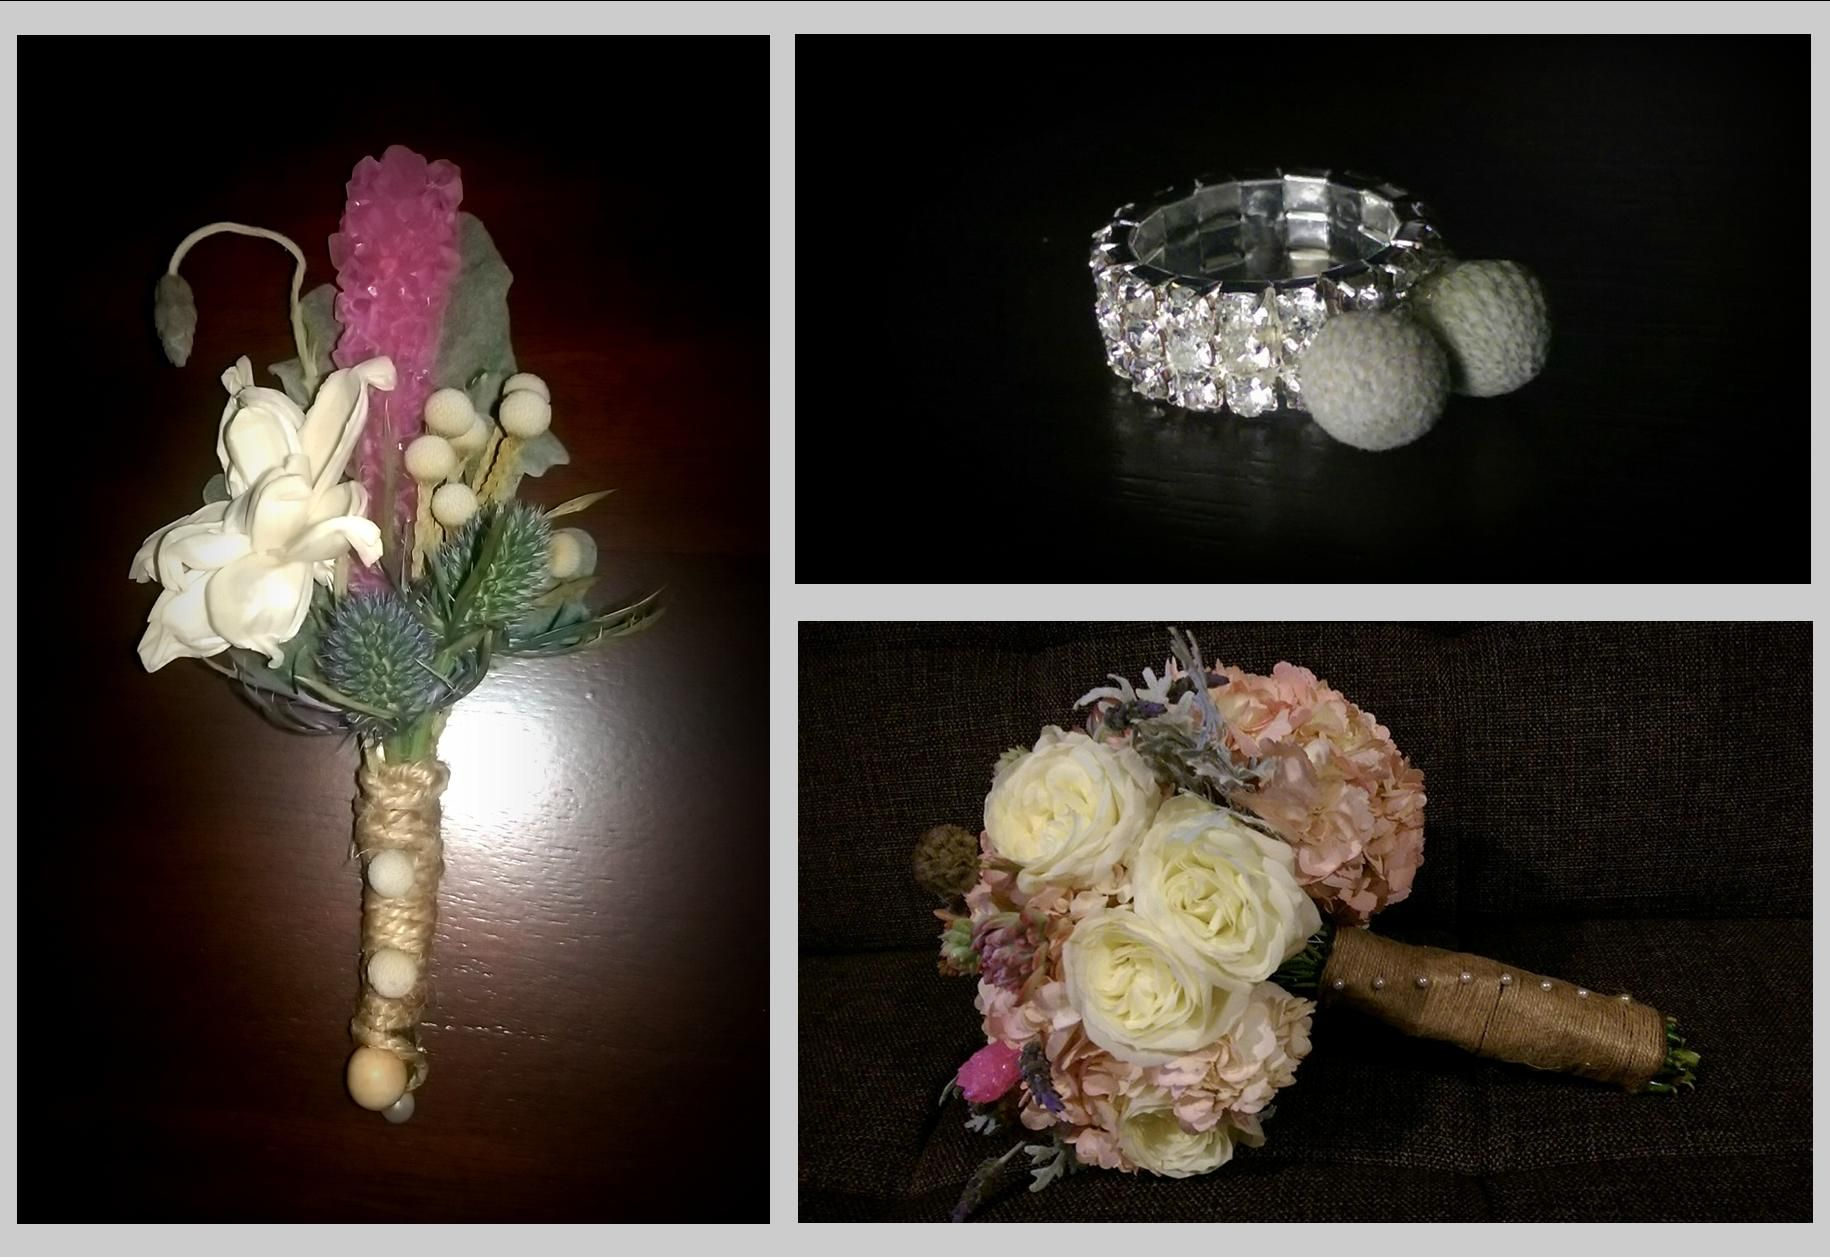 Fun carnival-inspired floral suite -- silver brunia berries rhinestone ring (in place of the traditional corsage), bouquet and boutonniere complete with pink bubblegum rock candy, sola pea flower, brunia berries, hydrangeas, garden roses, blue thistle, dusty miller, and lavender wrapped in twine